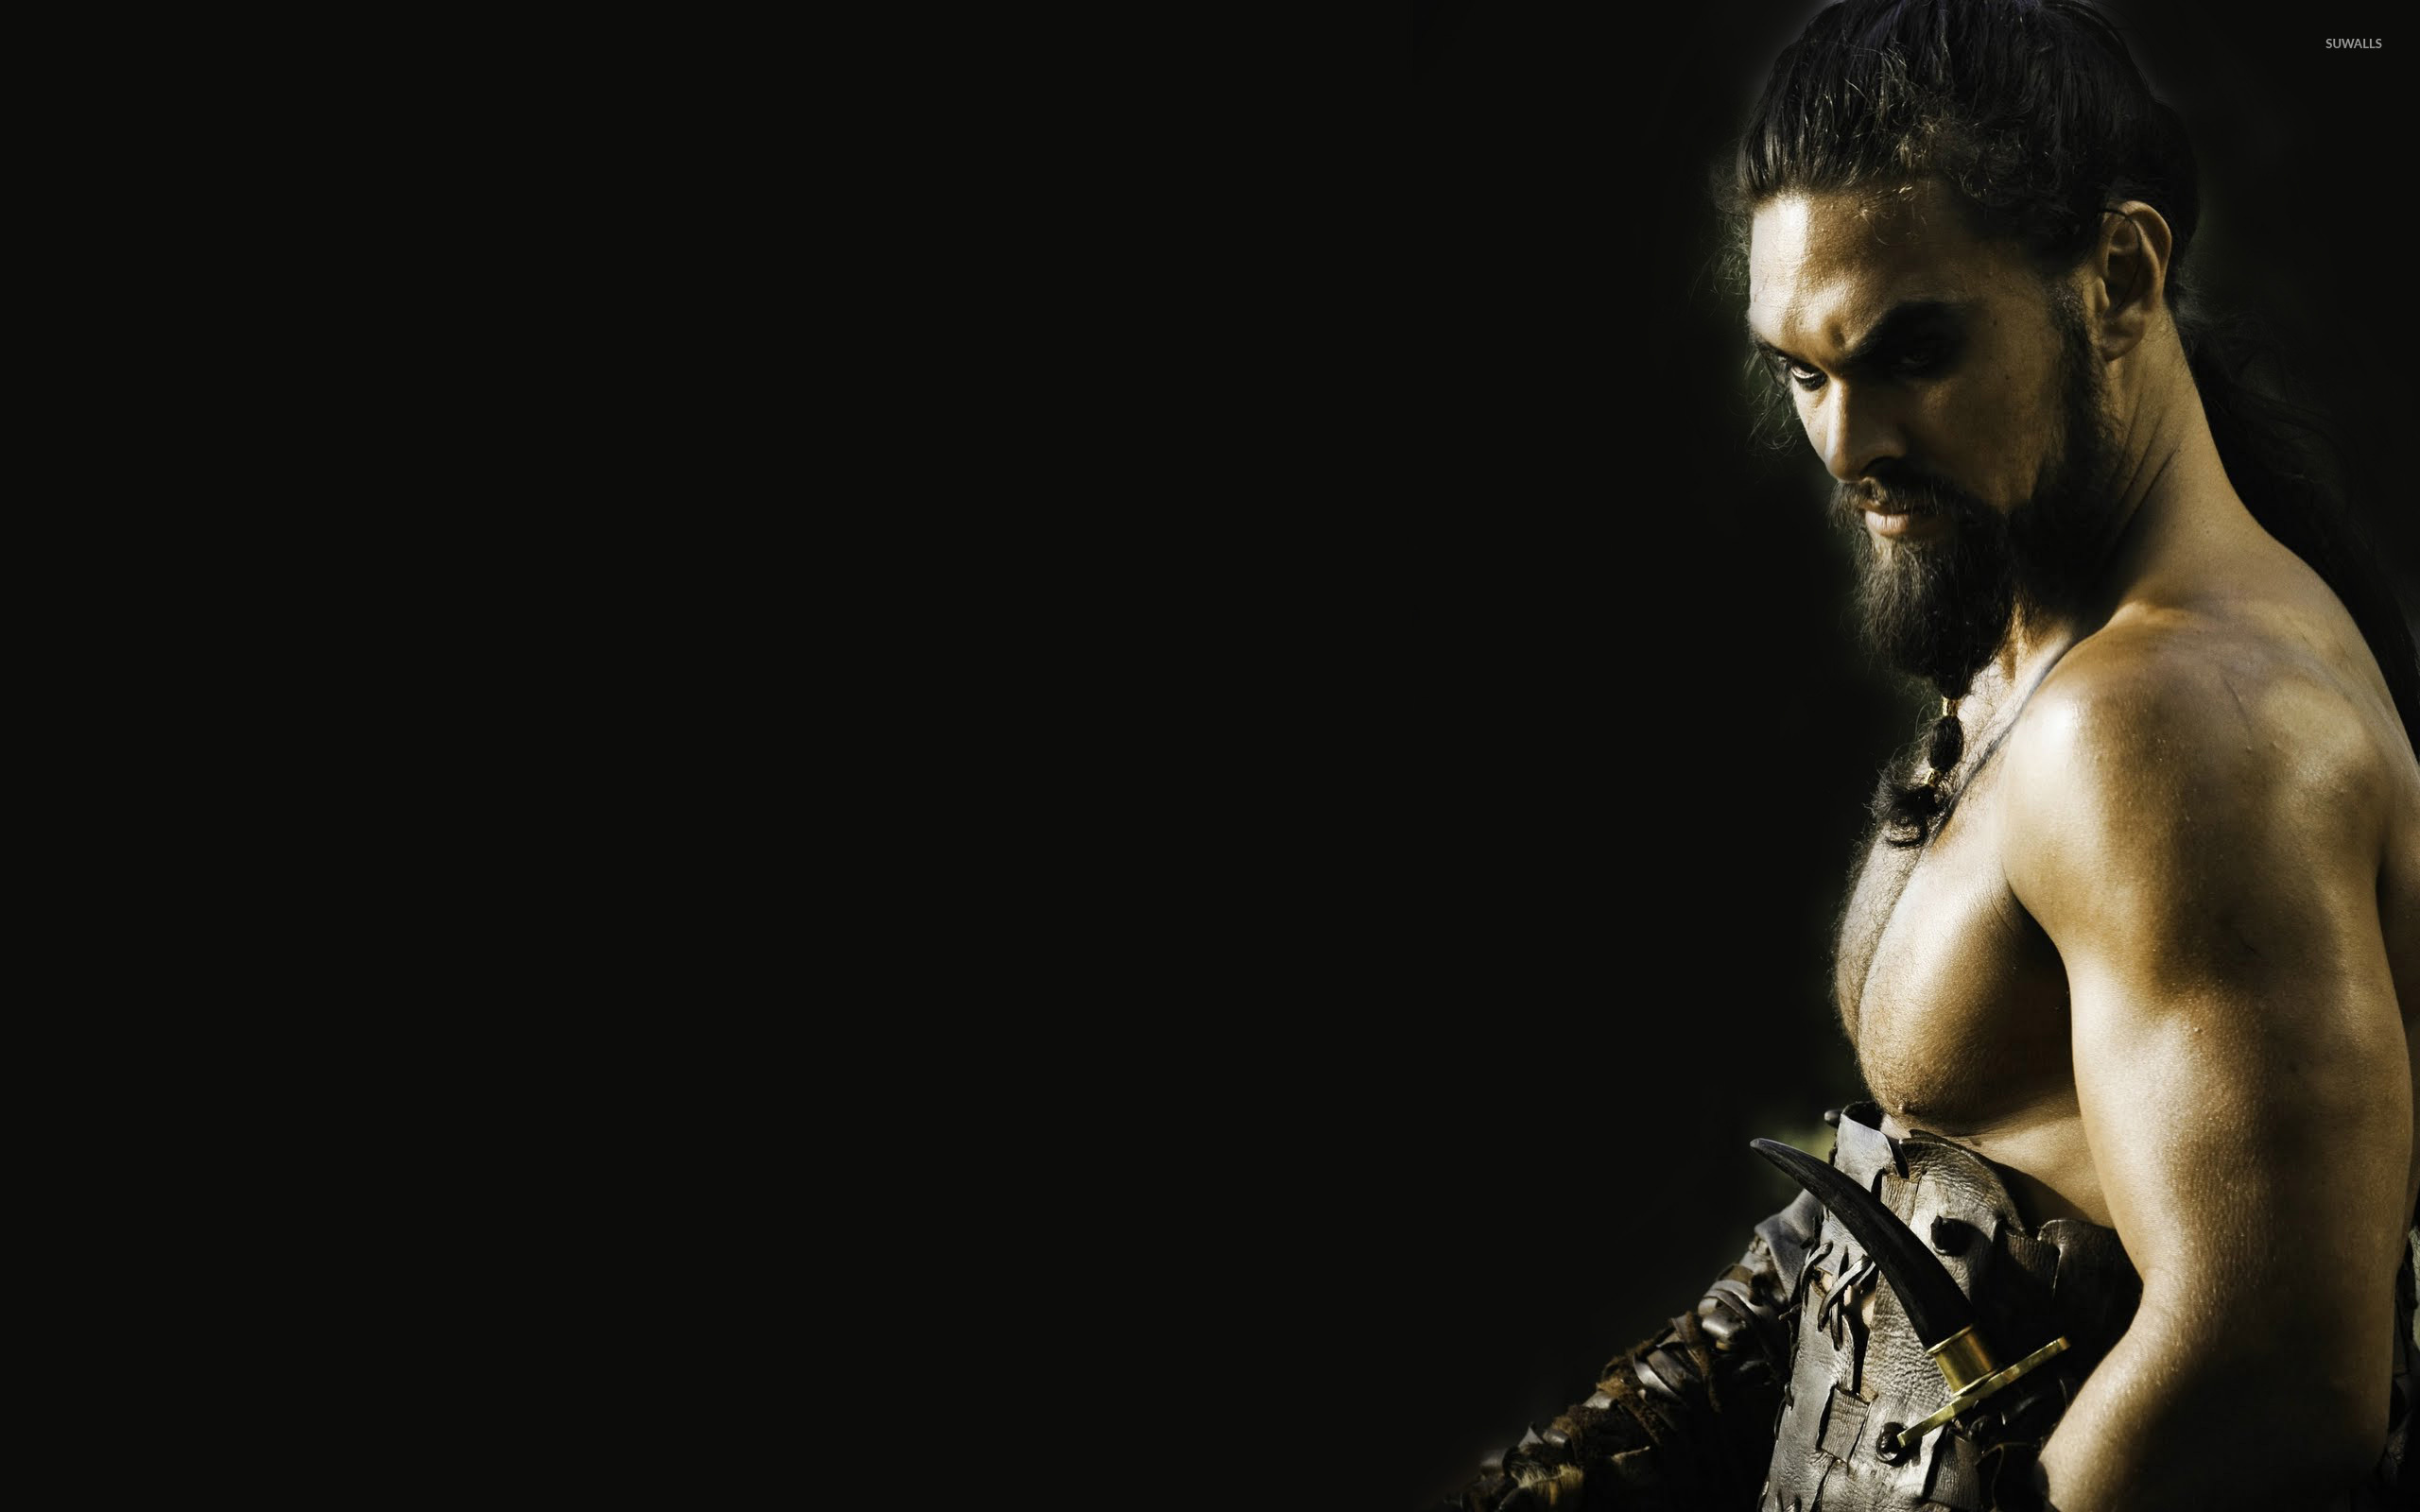 Jason Momoa wallpaper   Male celebrity wallpapers   4607 1280x800